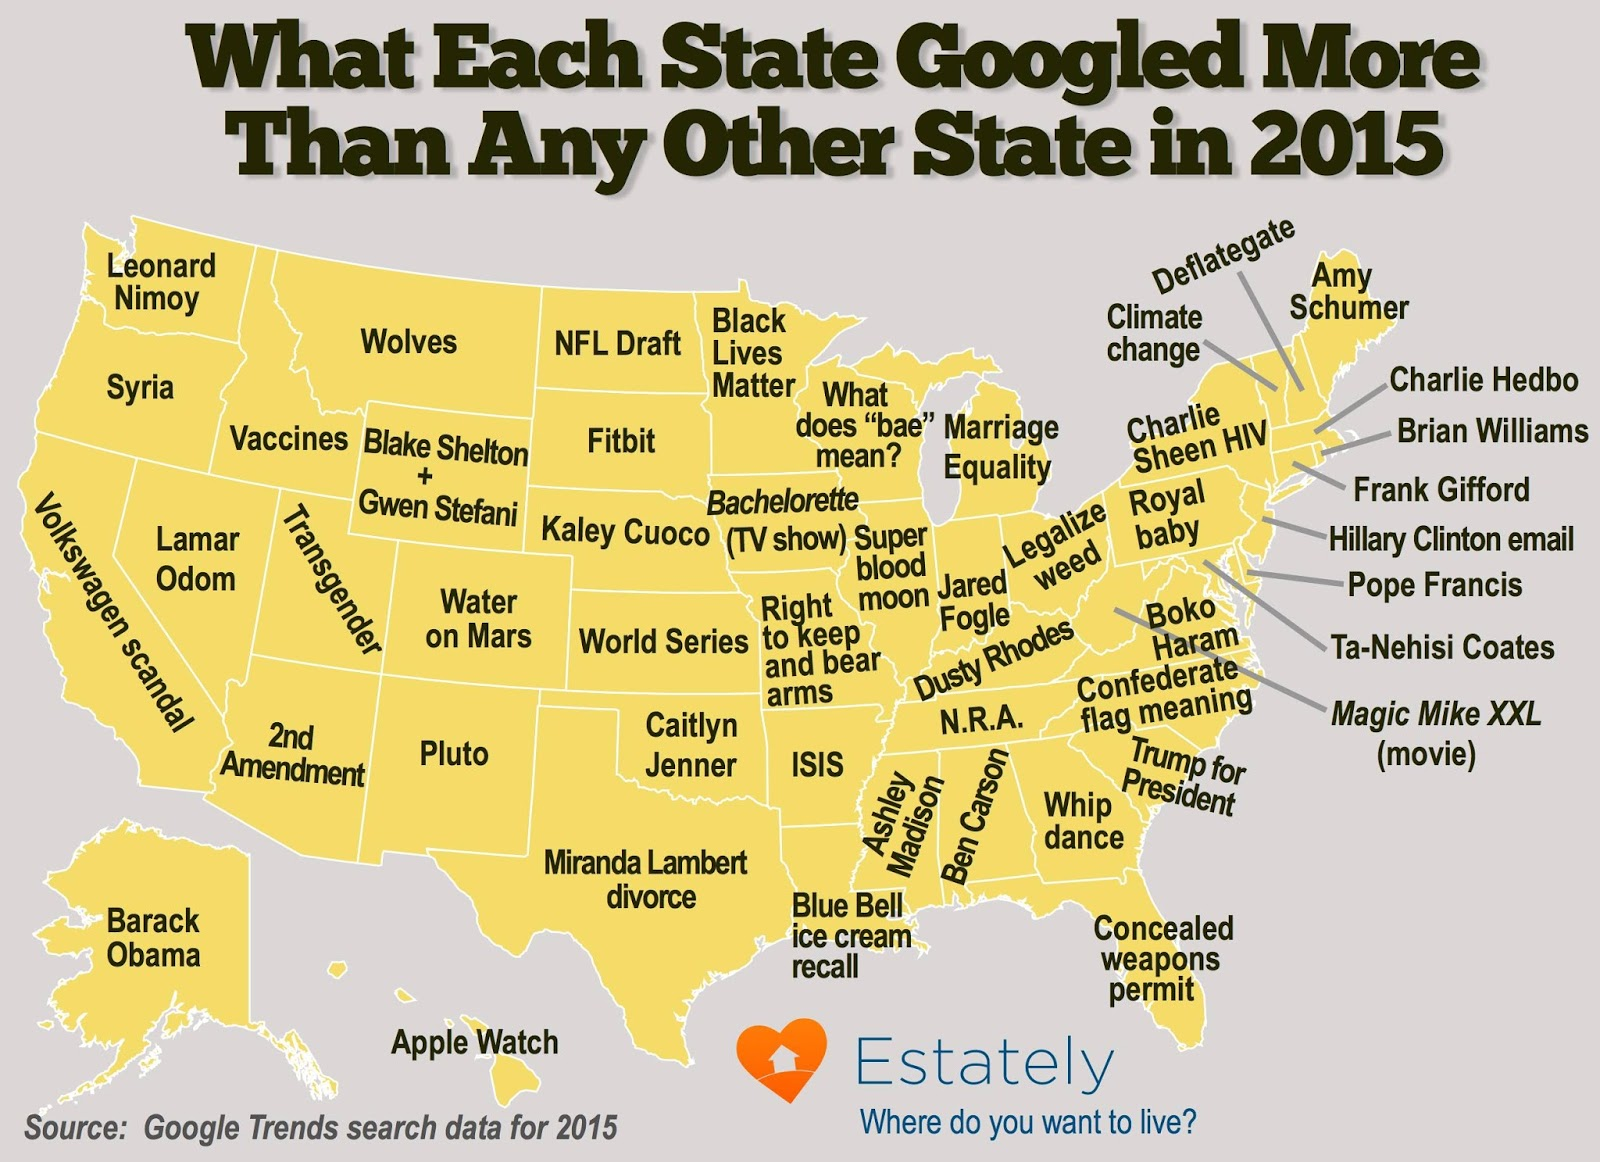 What each State googled more than any other State in 2015